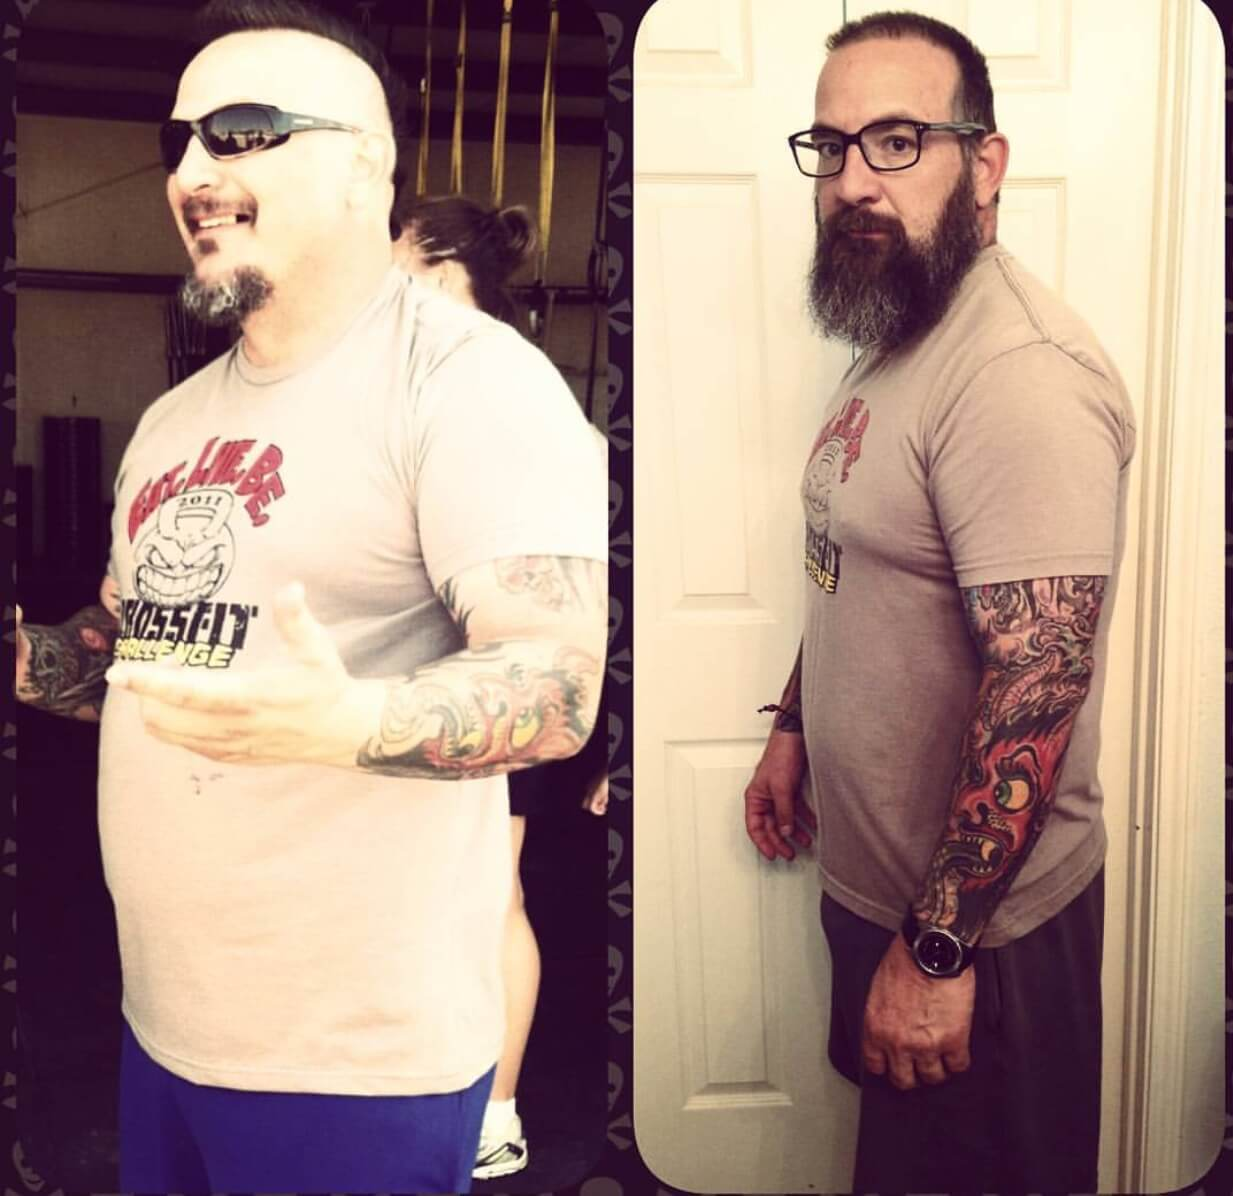 Rodney McElyea Lost 48 lbs